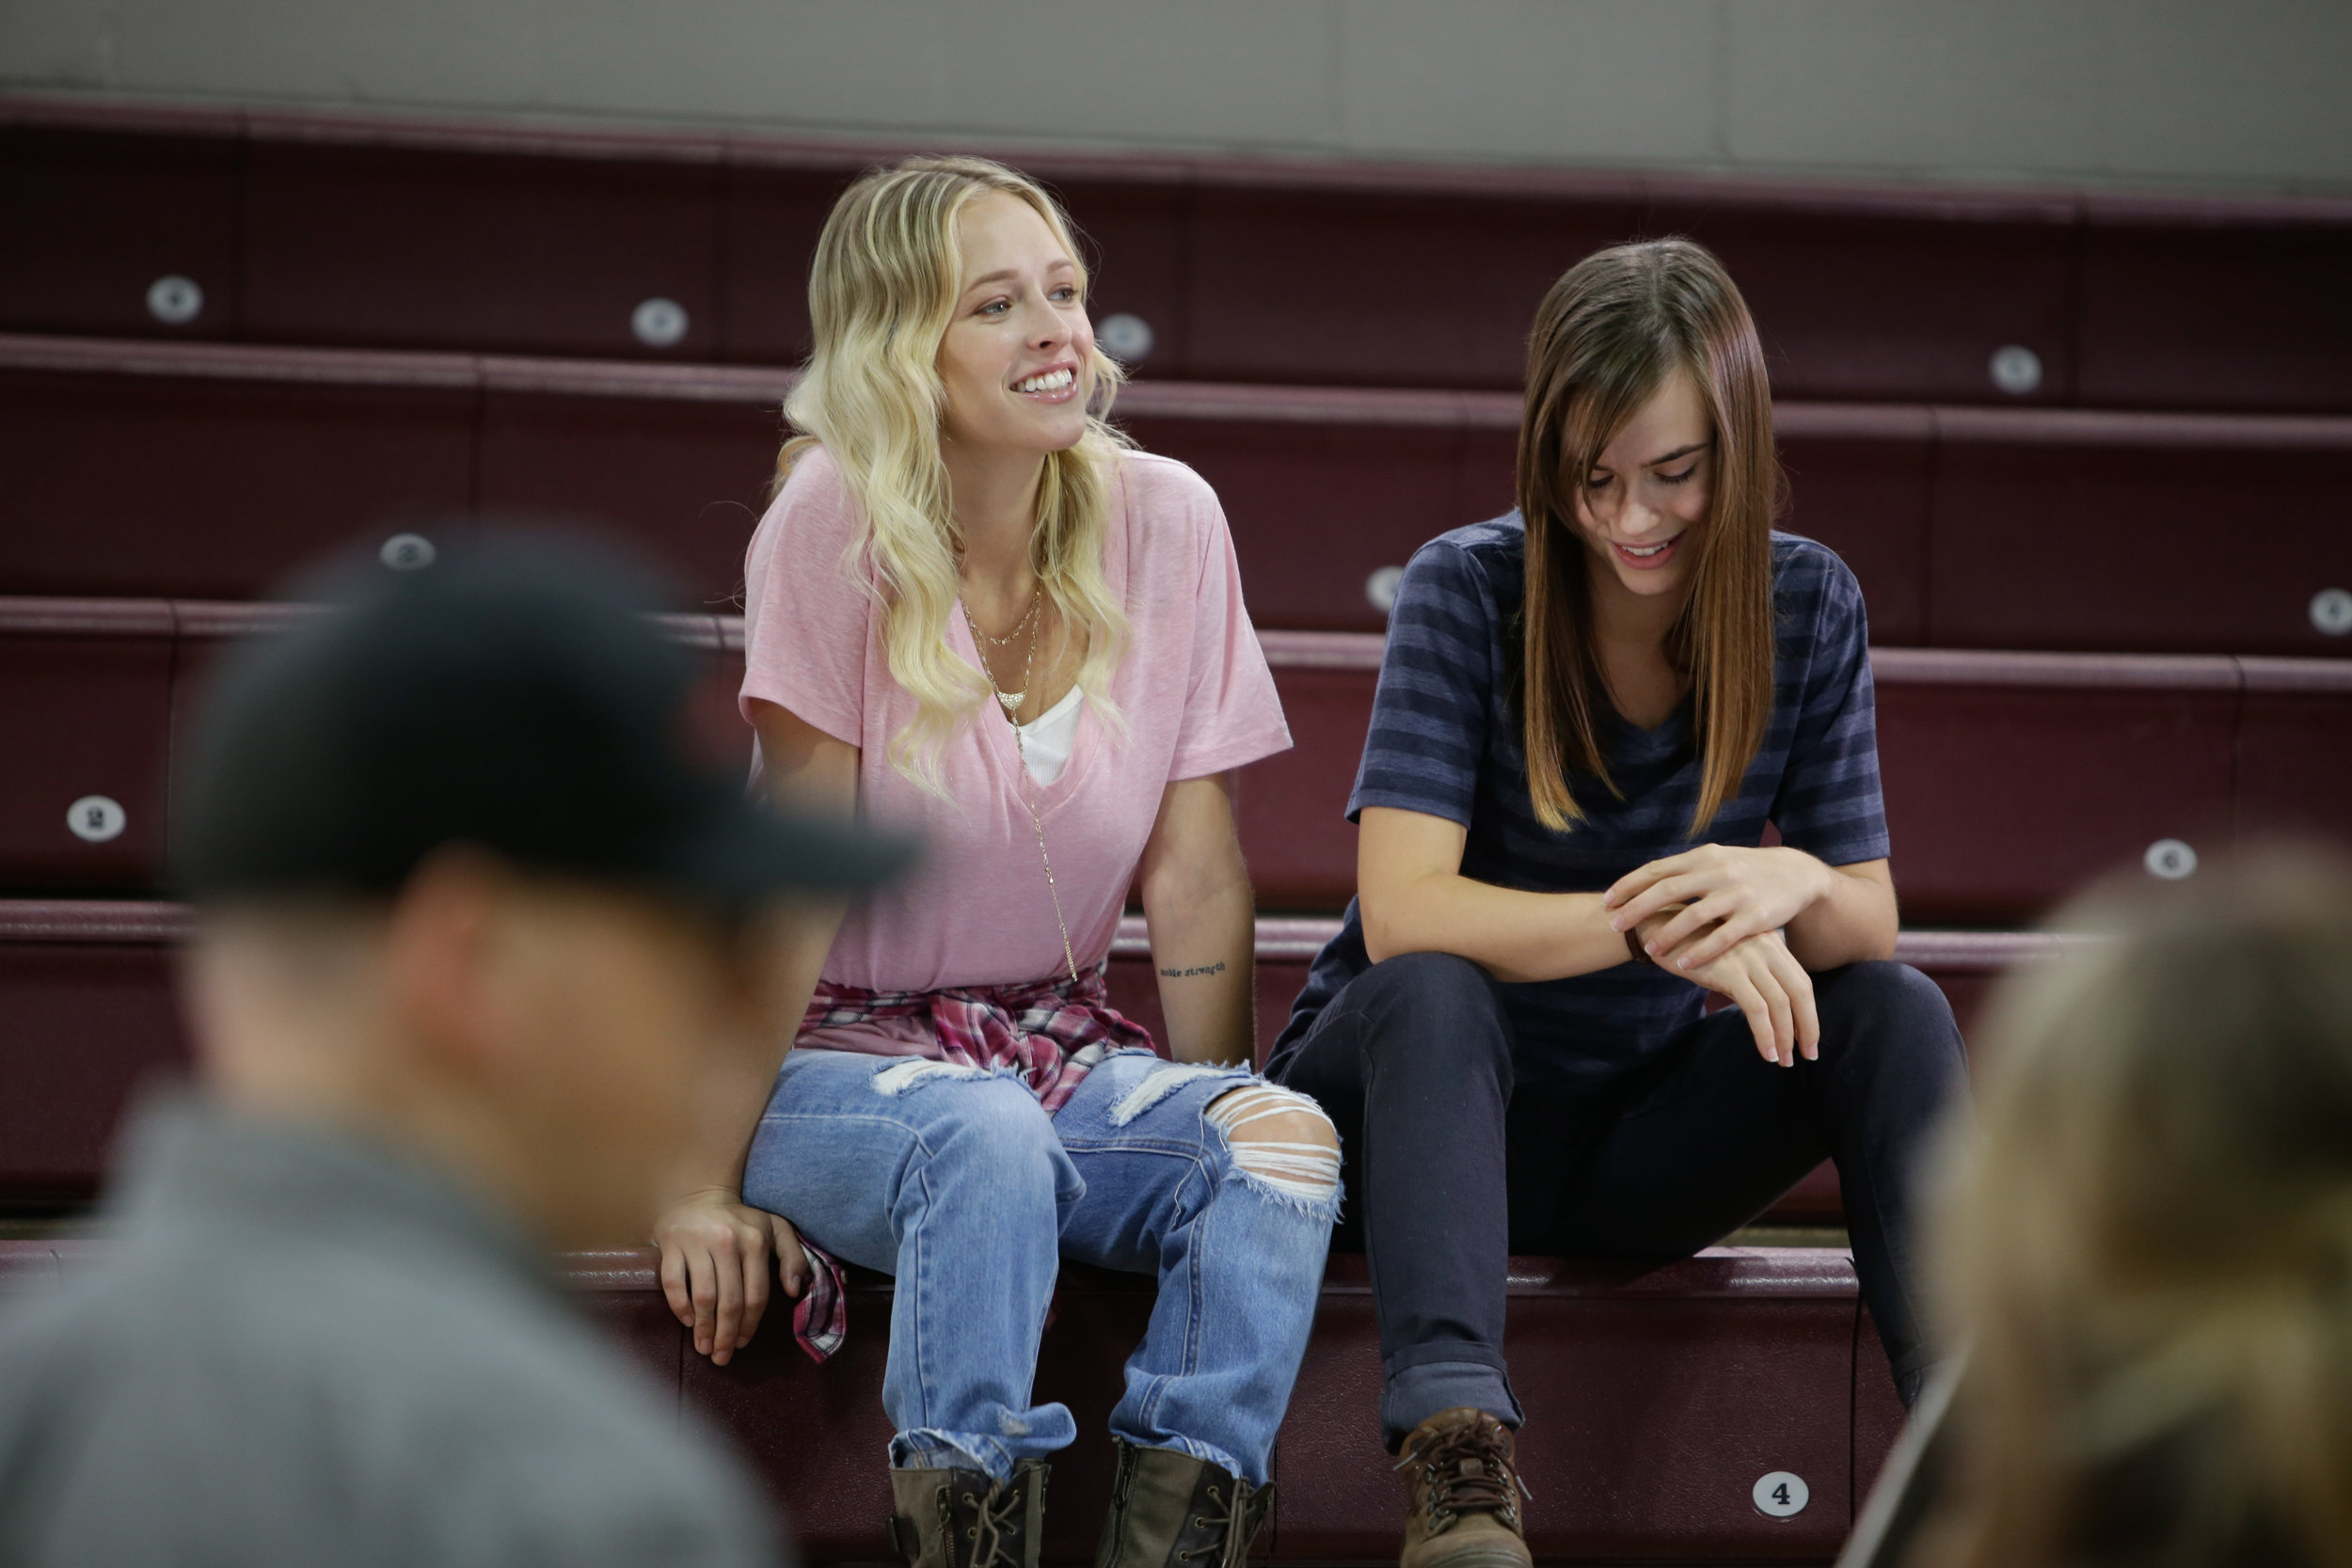 Audrey Neal (Cat Ryan) and Ema Horvath (Maxine Laret) enjoying the high life in the bleachers in the Fresno Christian gymnasium. Which did not smell, by the way. Cleanest gym I've ever been in. Photo Credit: Cody Allred